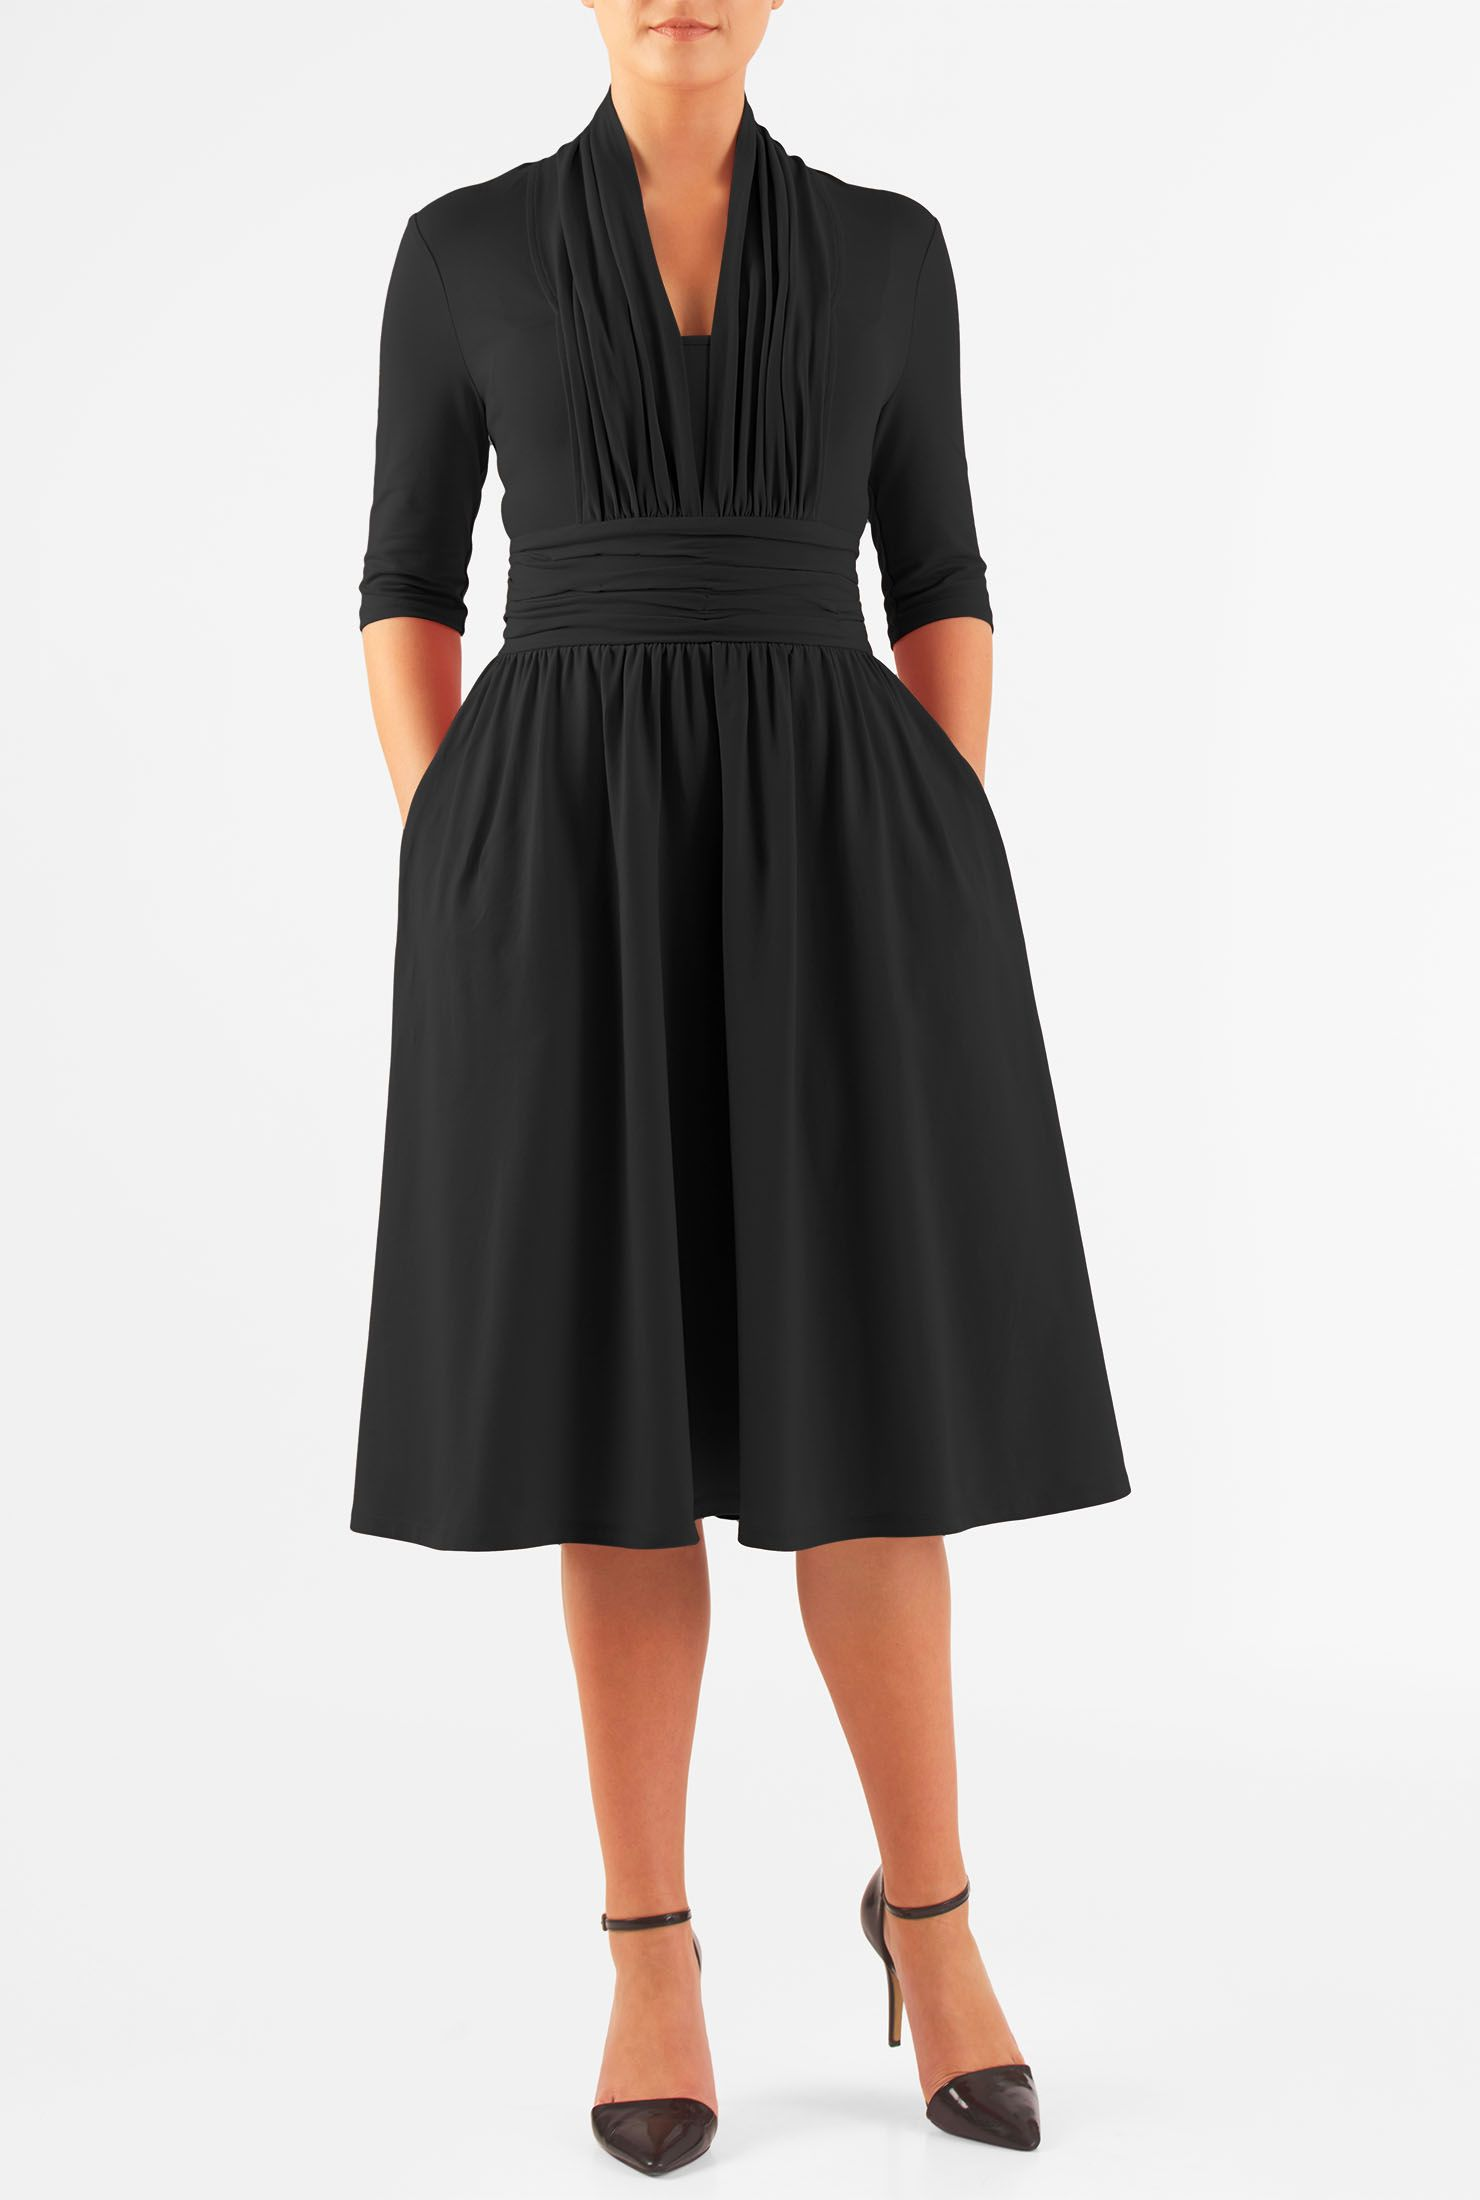 dfe04a47229c Our cotton jersey knit dress is styled with a pleated high back neck, deep  V-neck front, wide banded waist with ruched pleating and a full skirt.